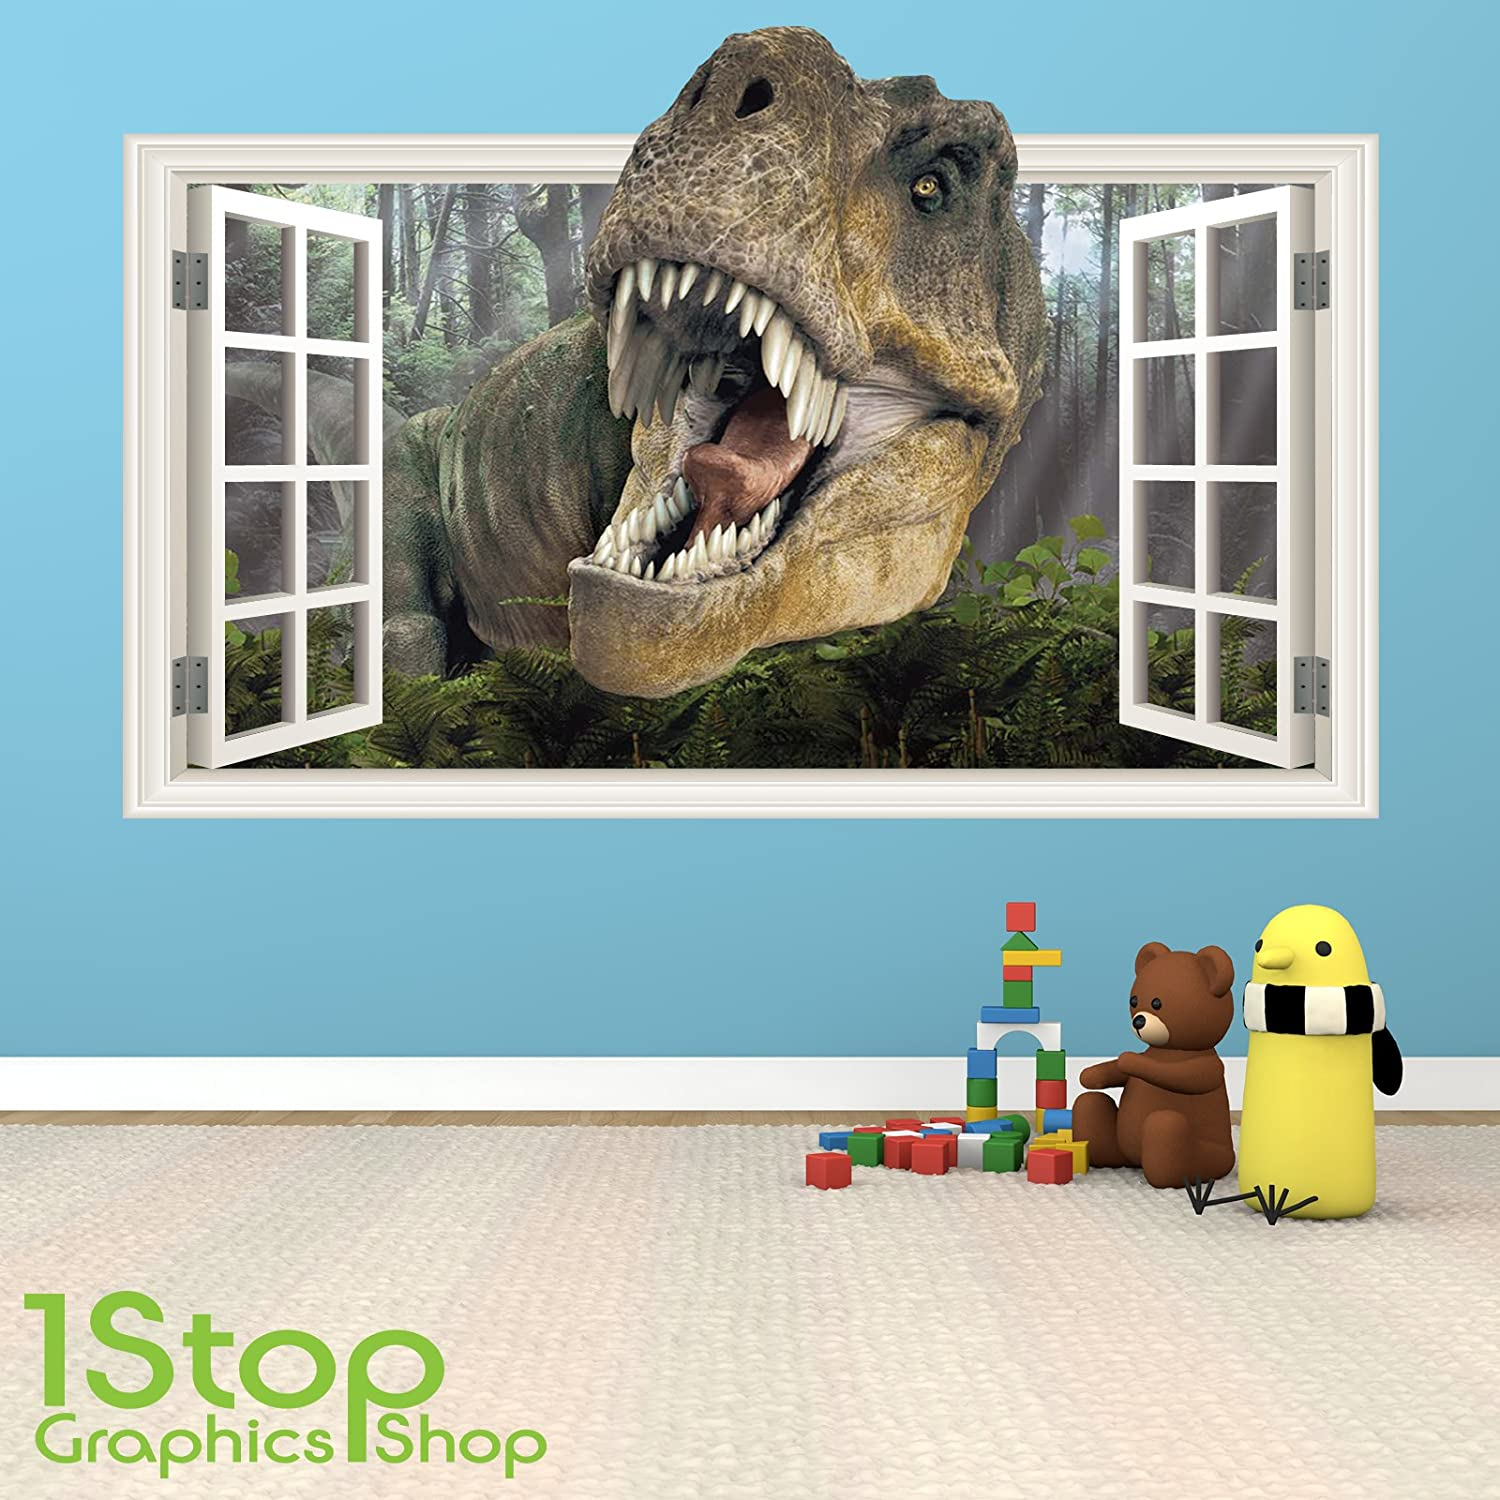 DINOSAUR WALL STICKER FULL COLOUR GIRLS BOYS KIDS BEDROOM WINDOW - 3d dinosaur wall decalsd dinosaur wall stickers for kids bedrooms jurassic world wall